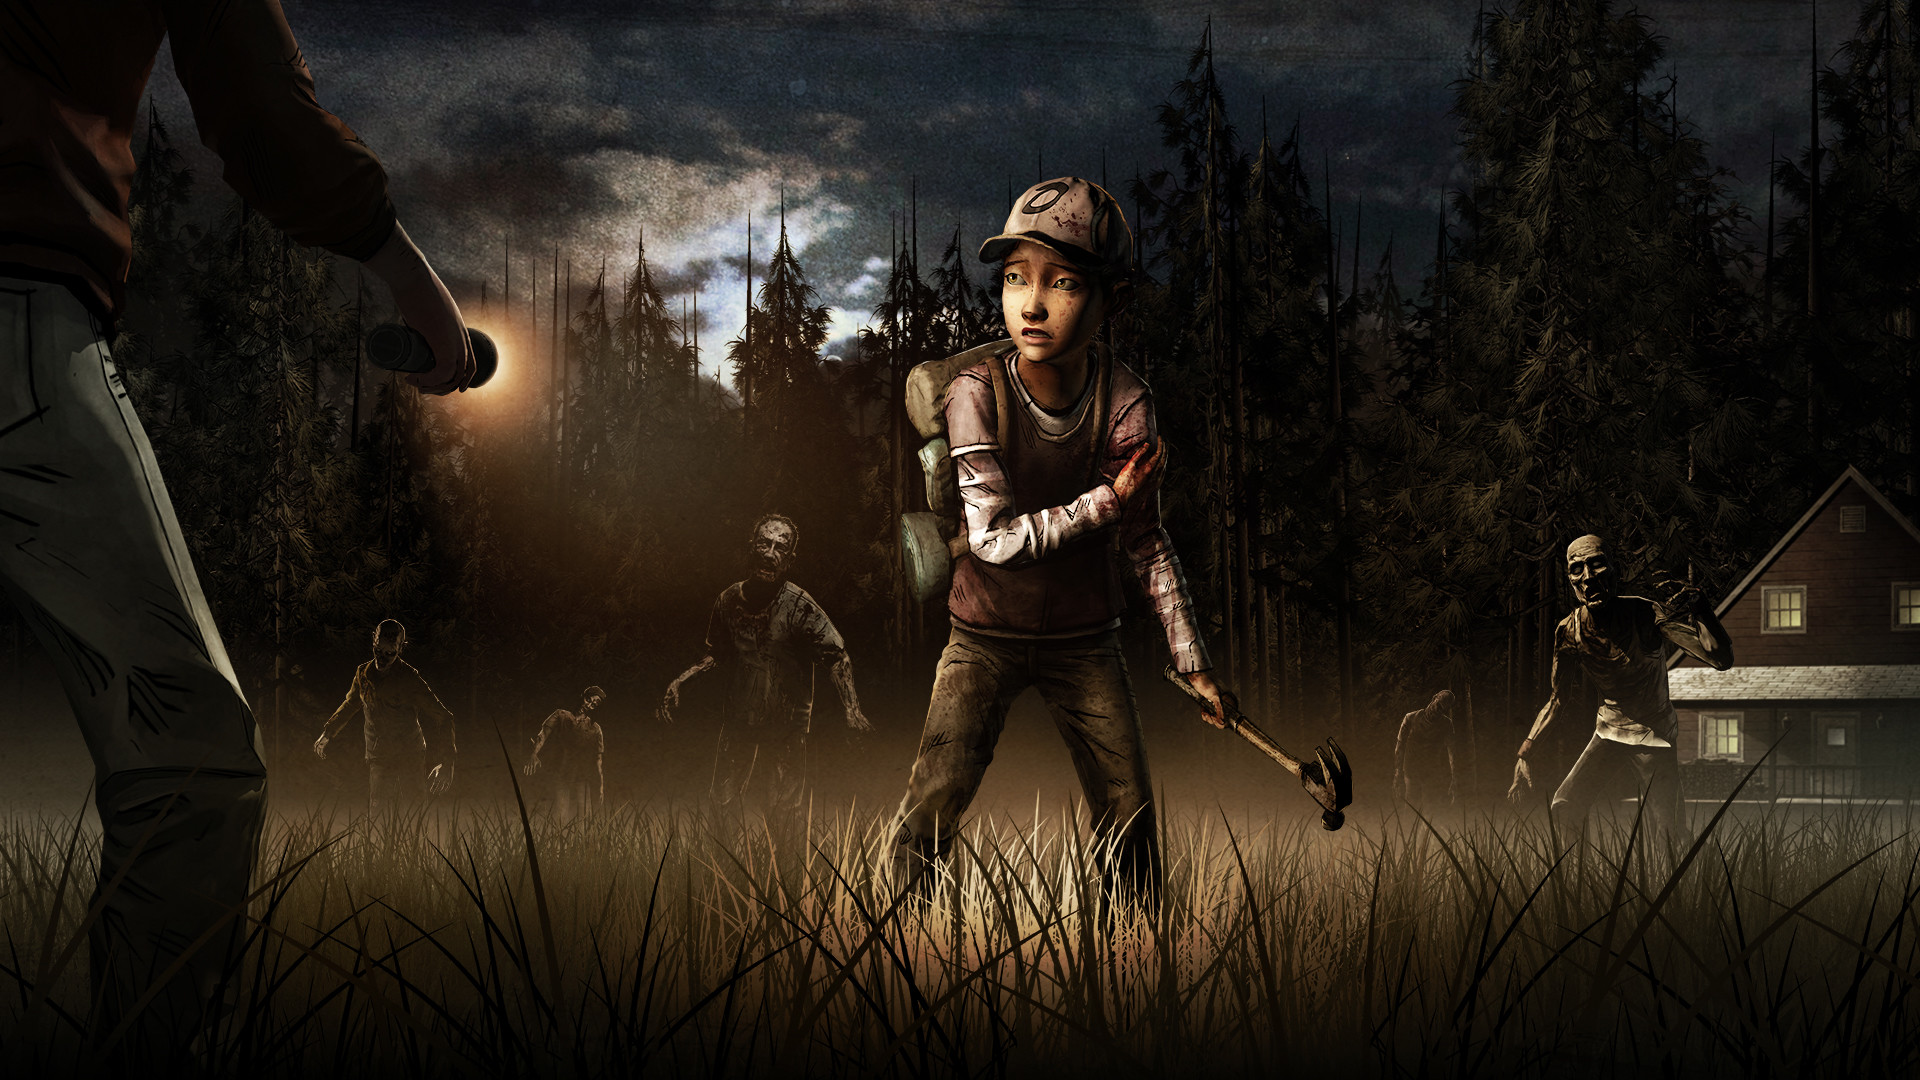 The Walking Dead Game Wallpaper 83 images 1920x1080